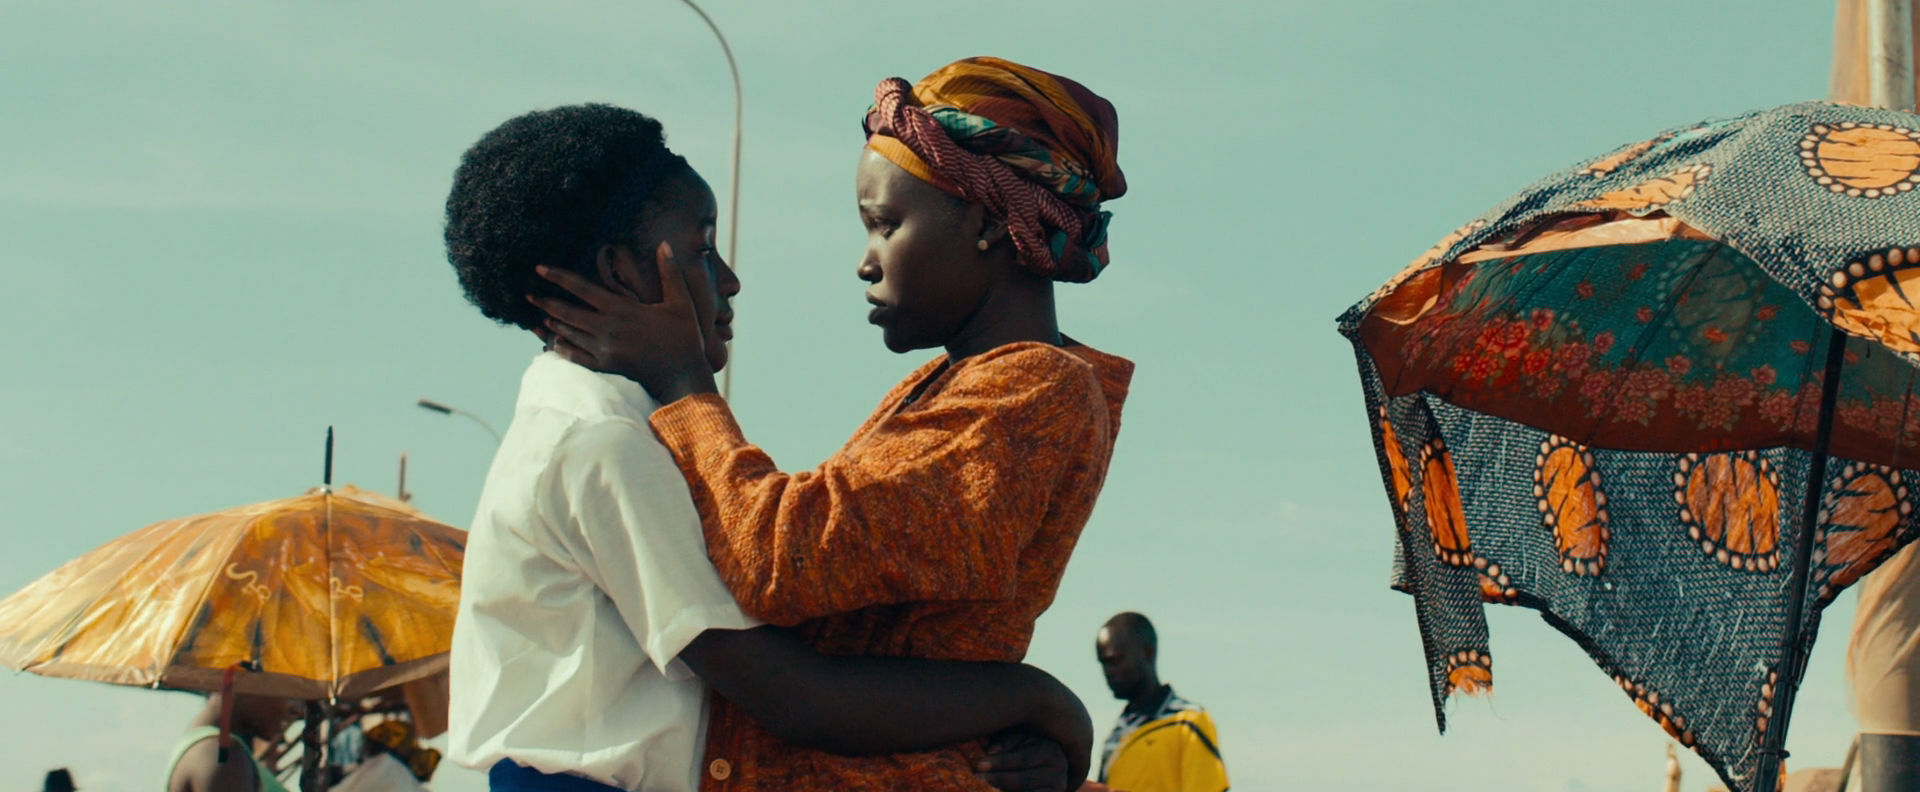 Queen of Katwe - Trailer